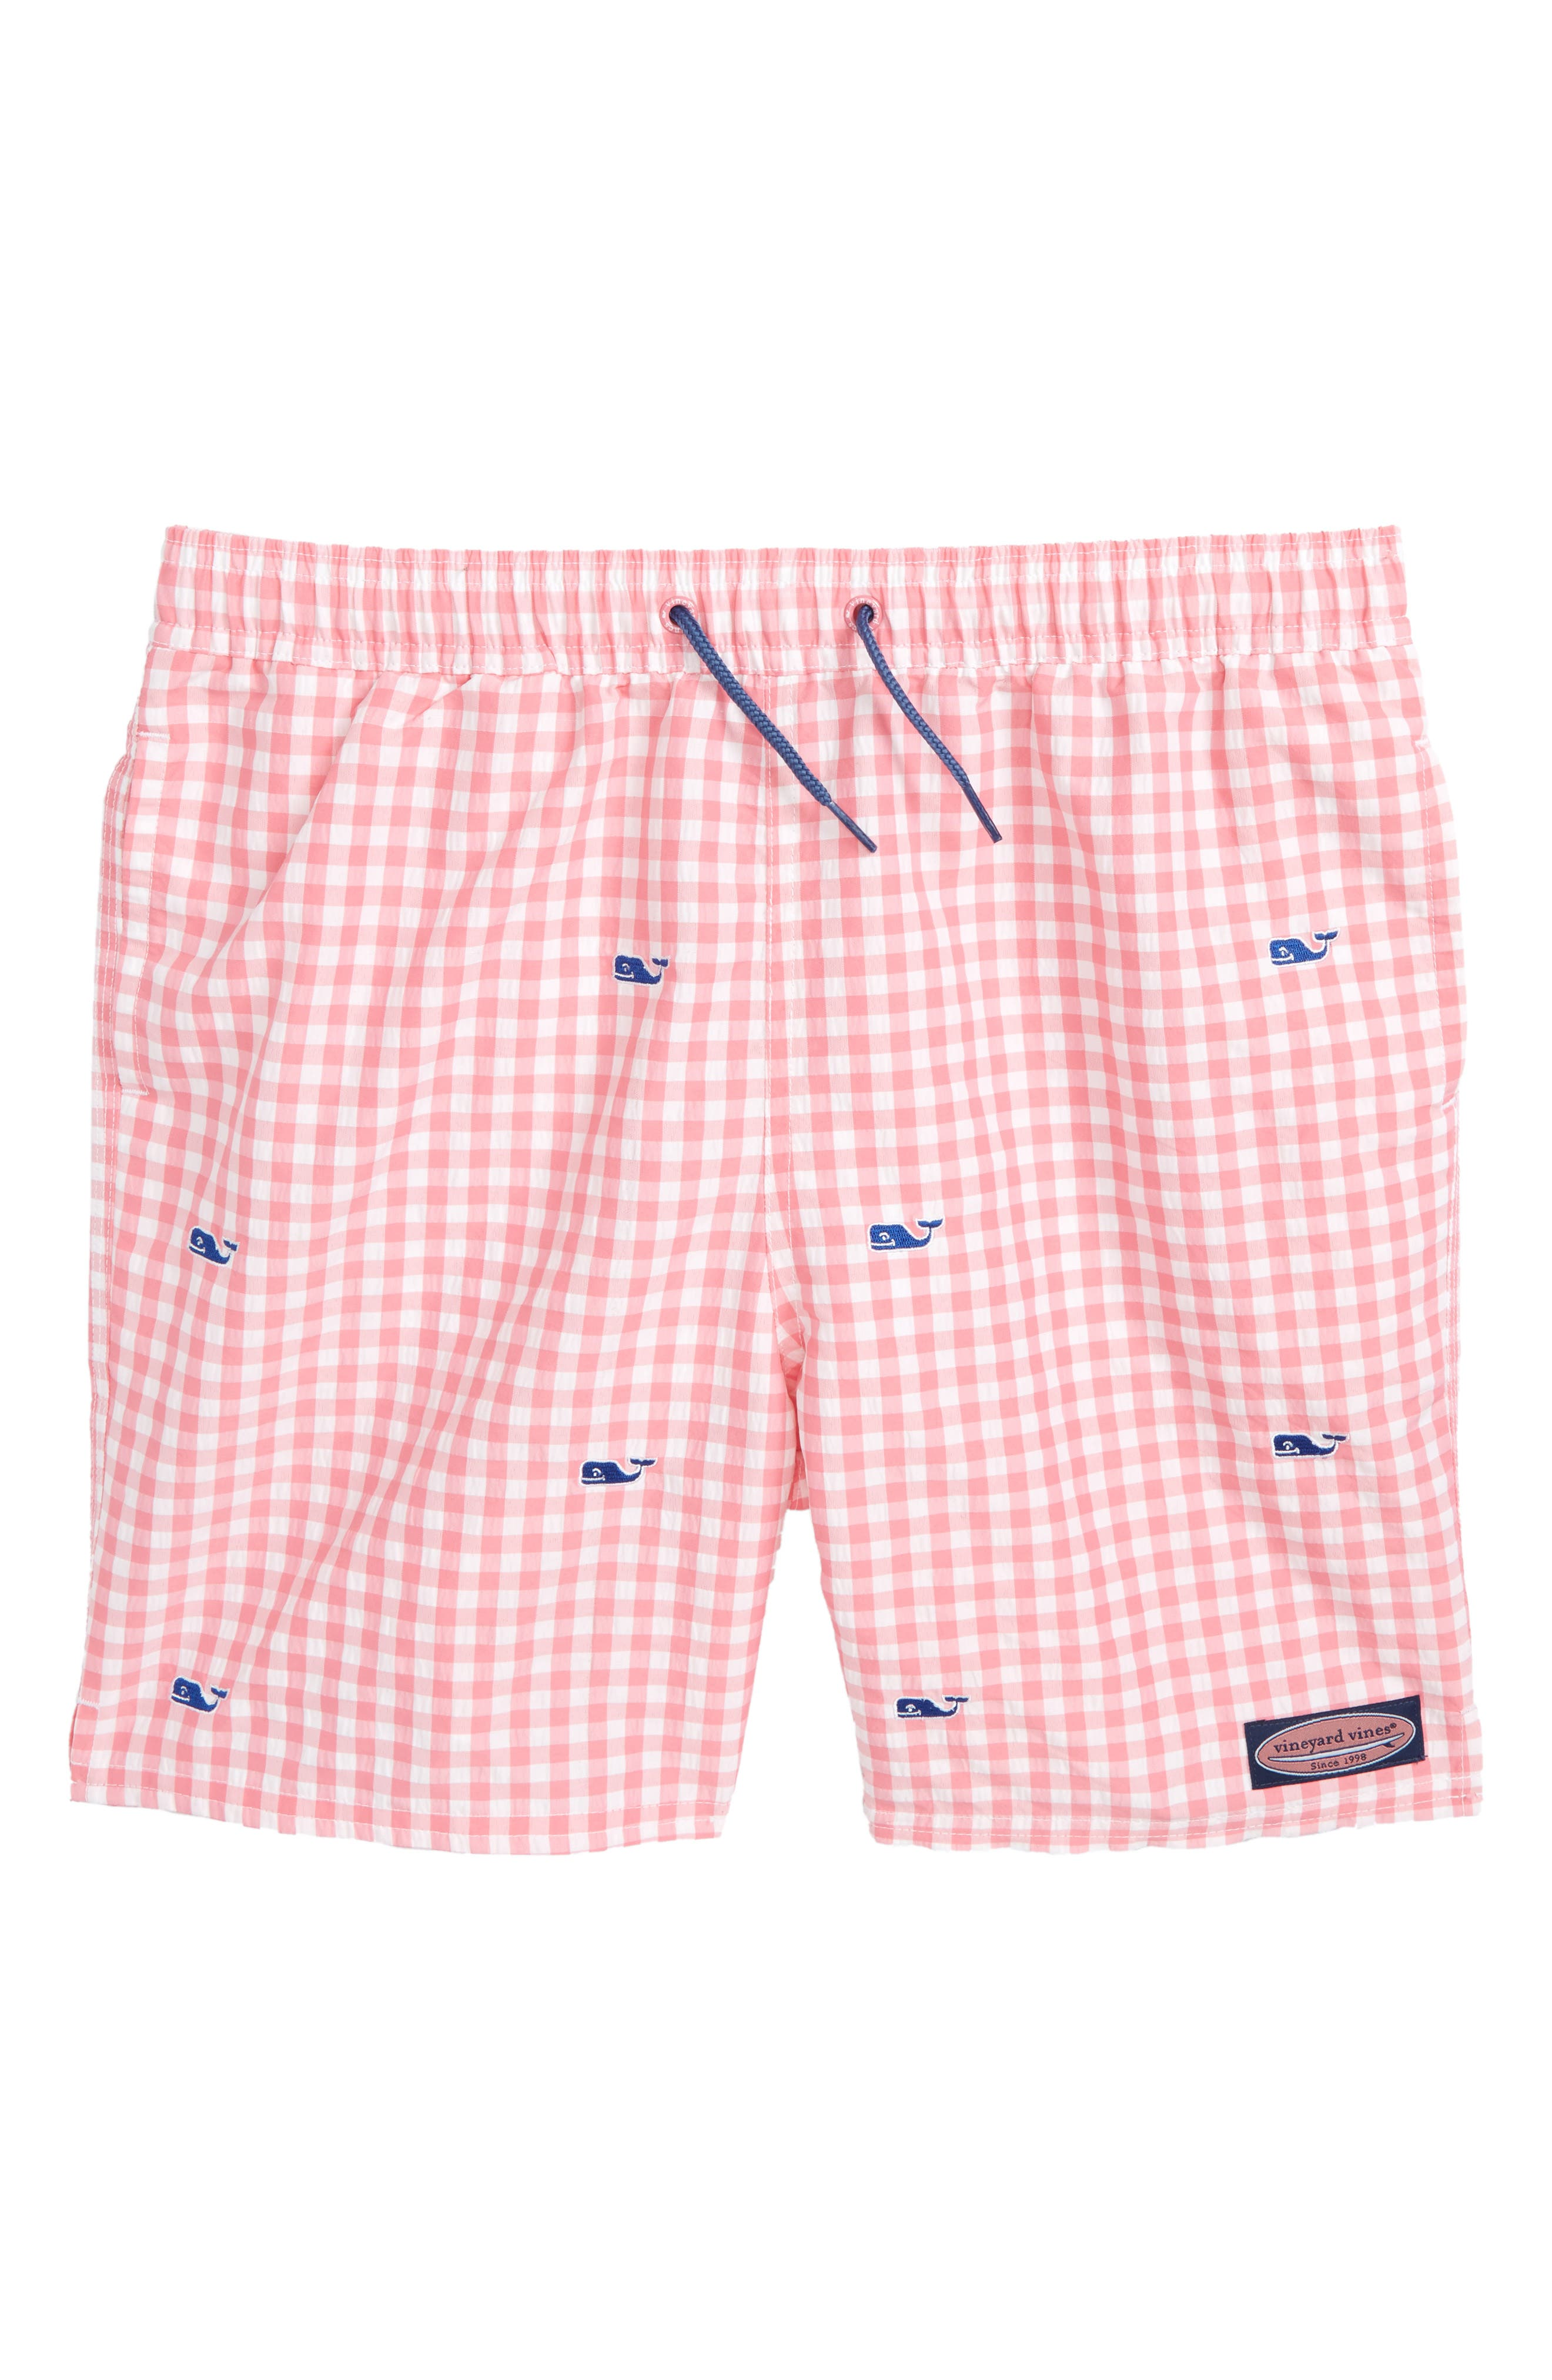 Embroidered Micro Gingham Check Swim Trunks,                         Main,                         color, 400